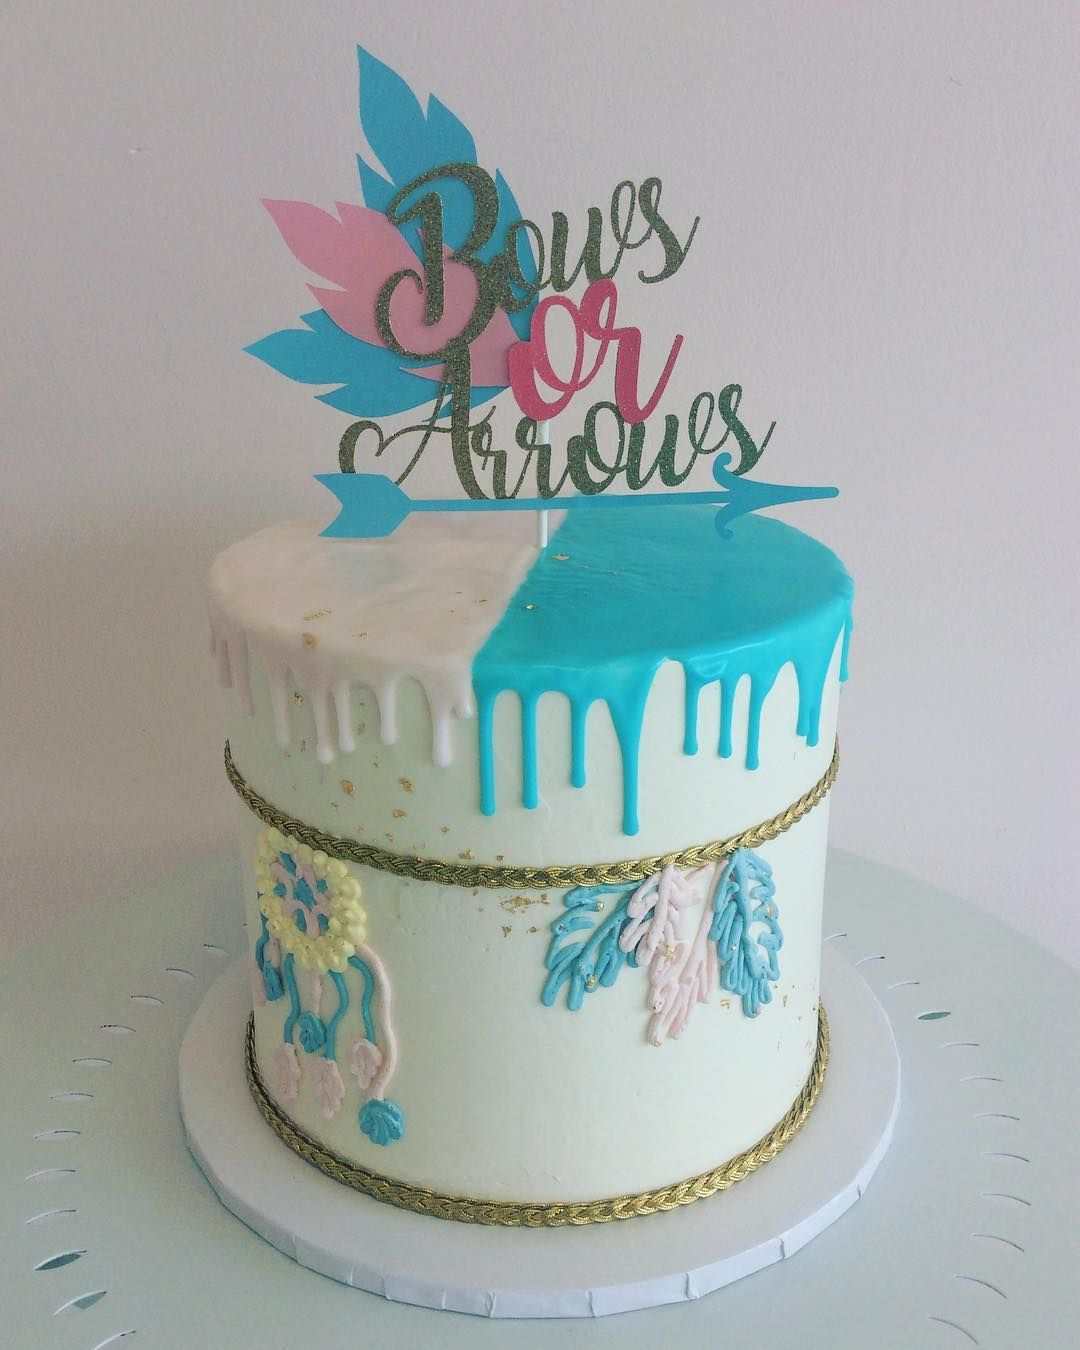 Bows Or Arrows How Perfect Of A Gender Reveal Cake Madefromscratch Bakery Beachesdessertplace Gender Reveal Cake Gender Reveal Gender Reveal Party Theme